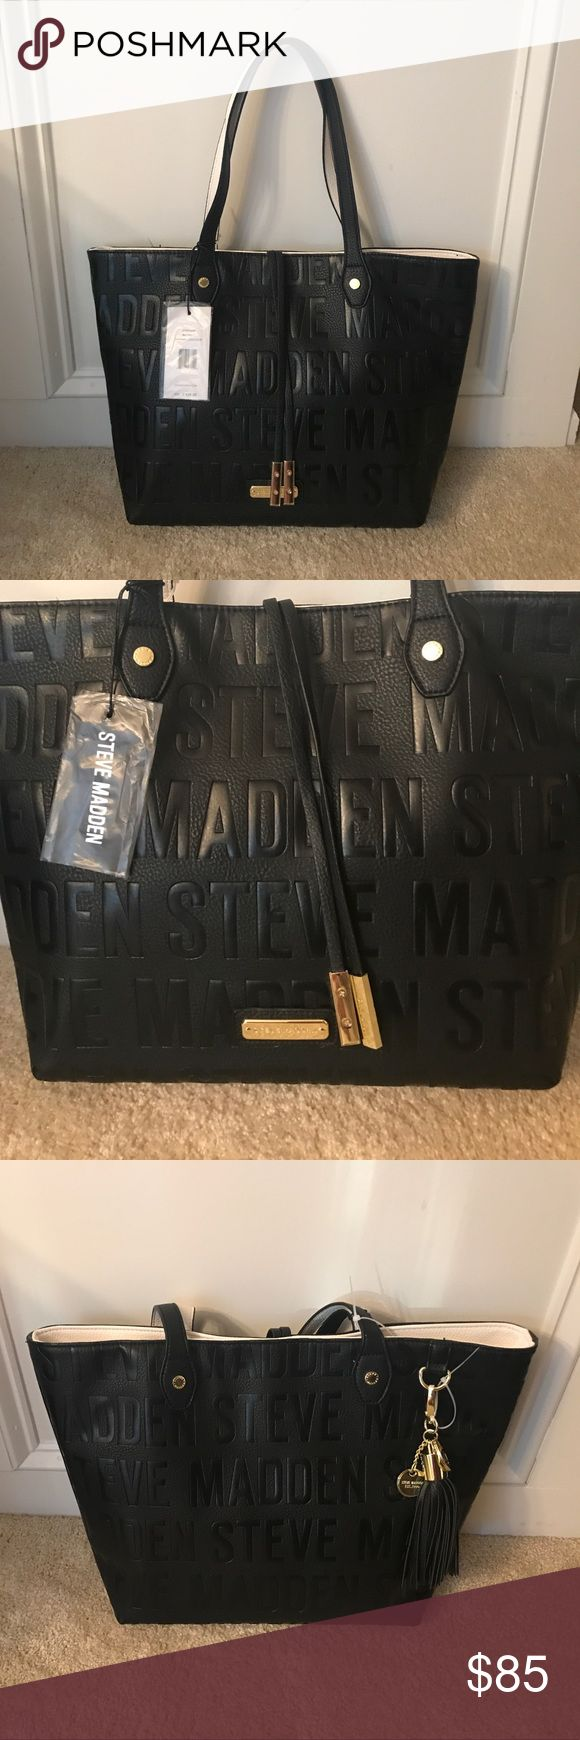 STEVE MADDEN- Tote and Bonus Purse NWT STEVE MADDEN- NWT Tote with bonus white purse Steve Madden Bags Shoulder Bags